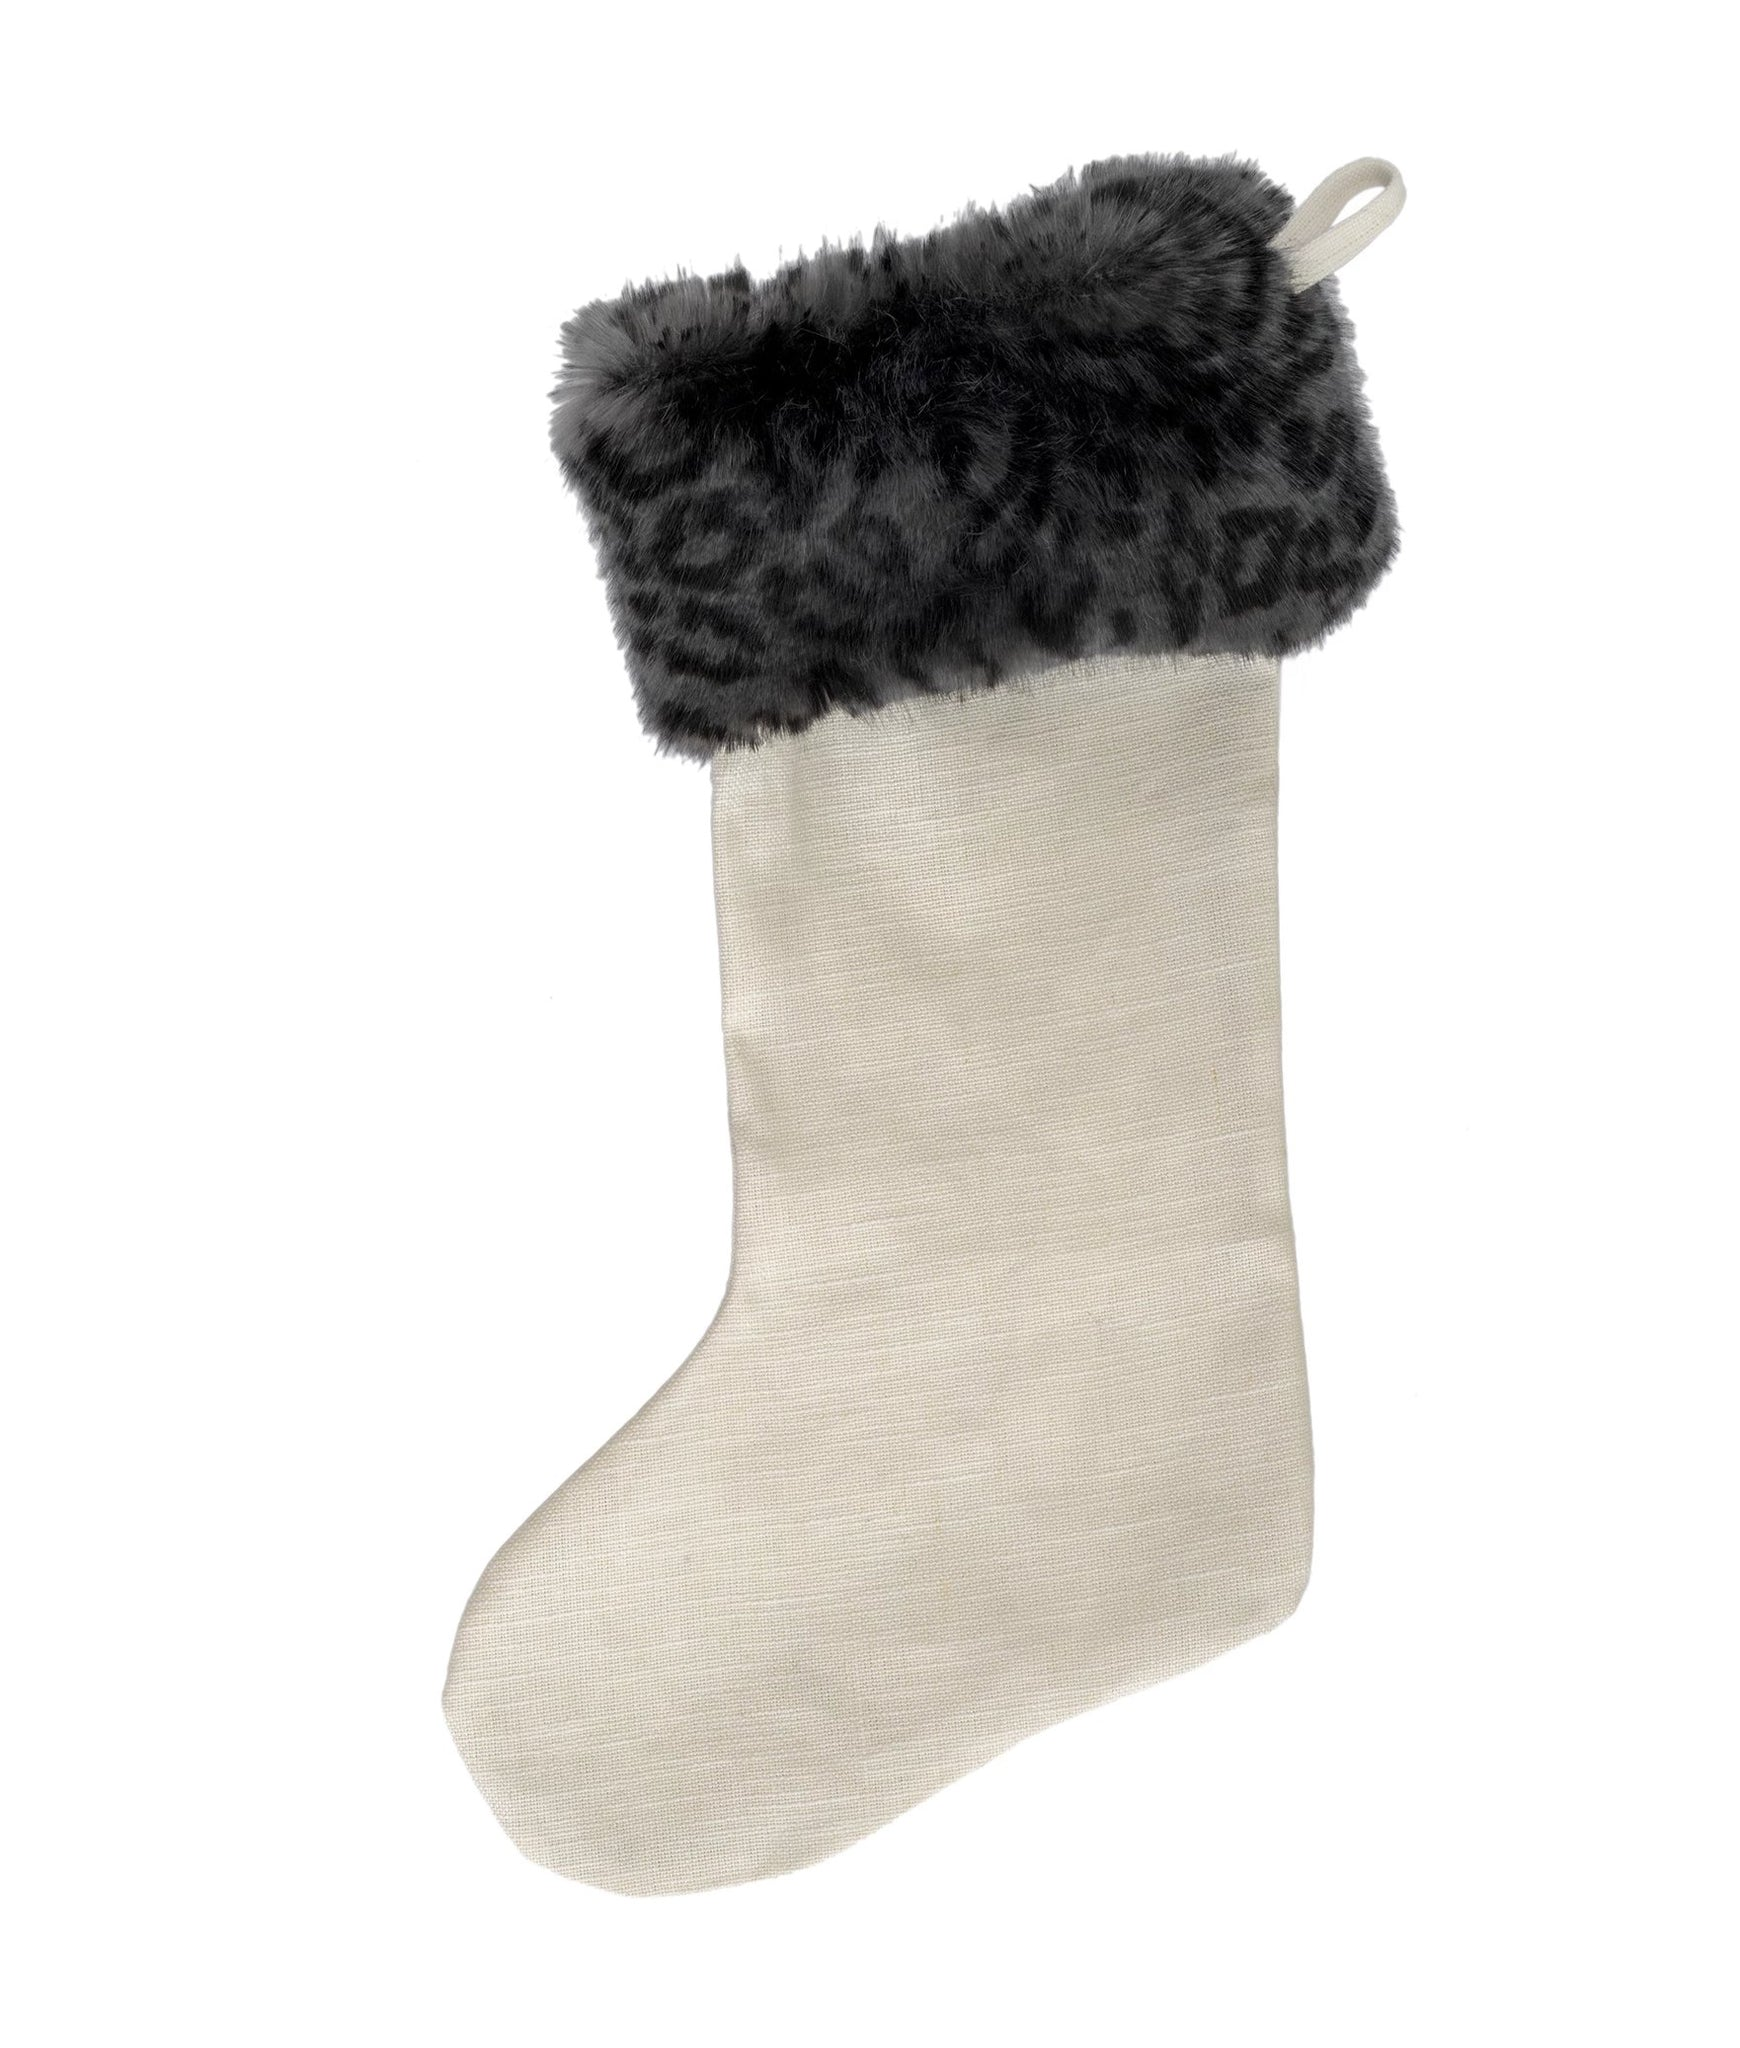 Snow Leopard Glam Stocking